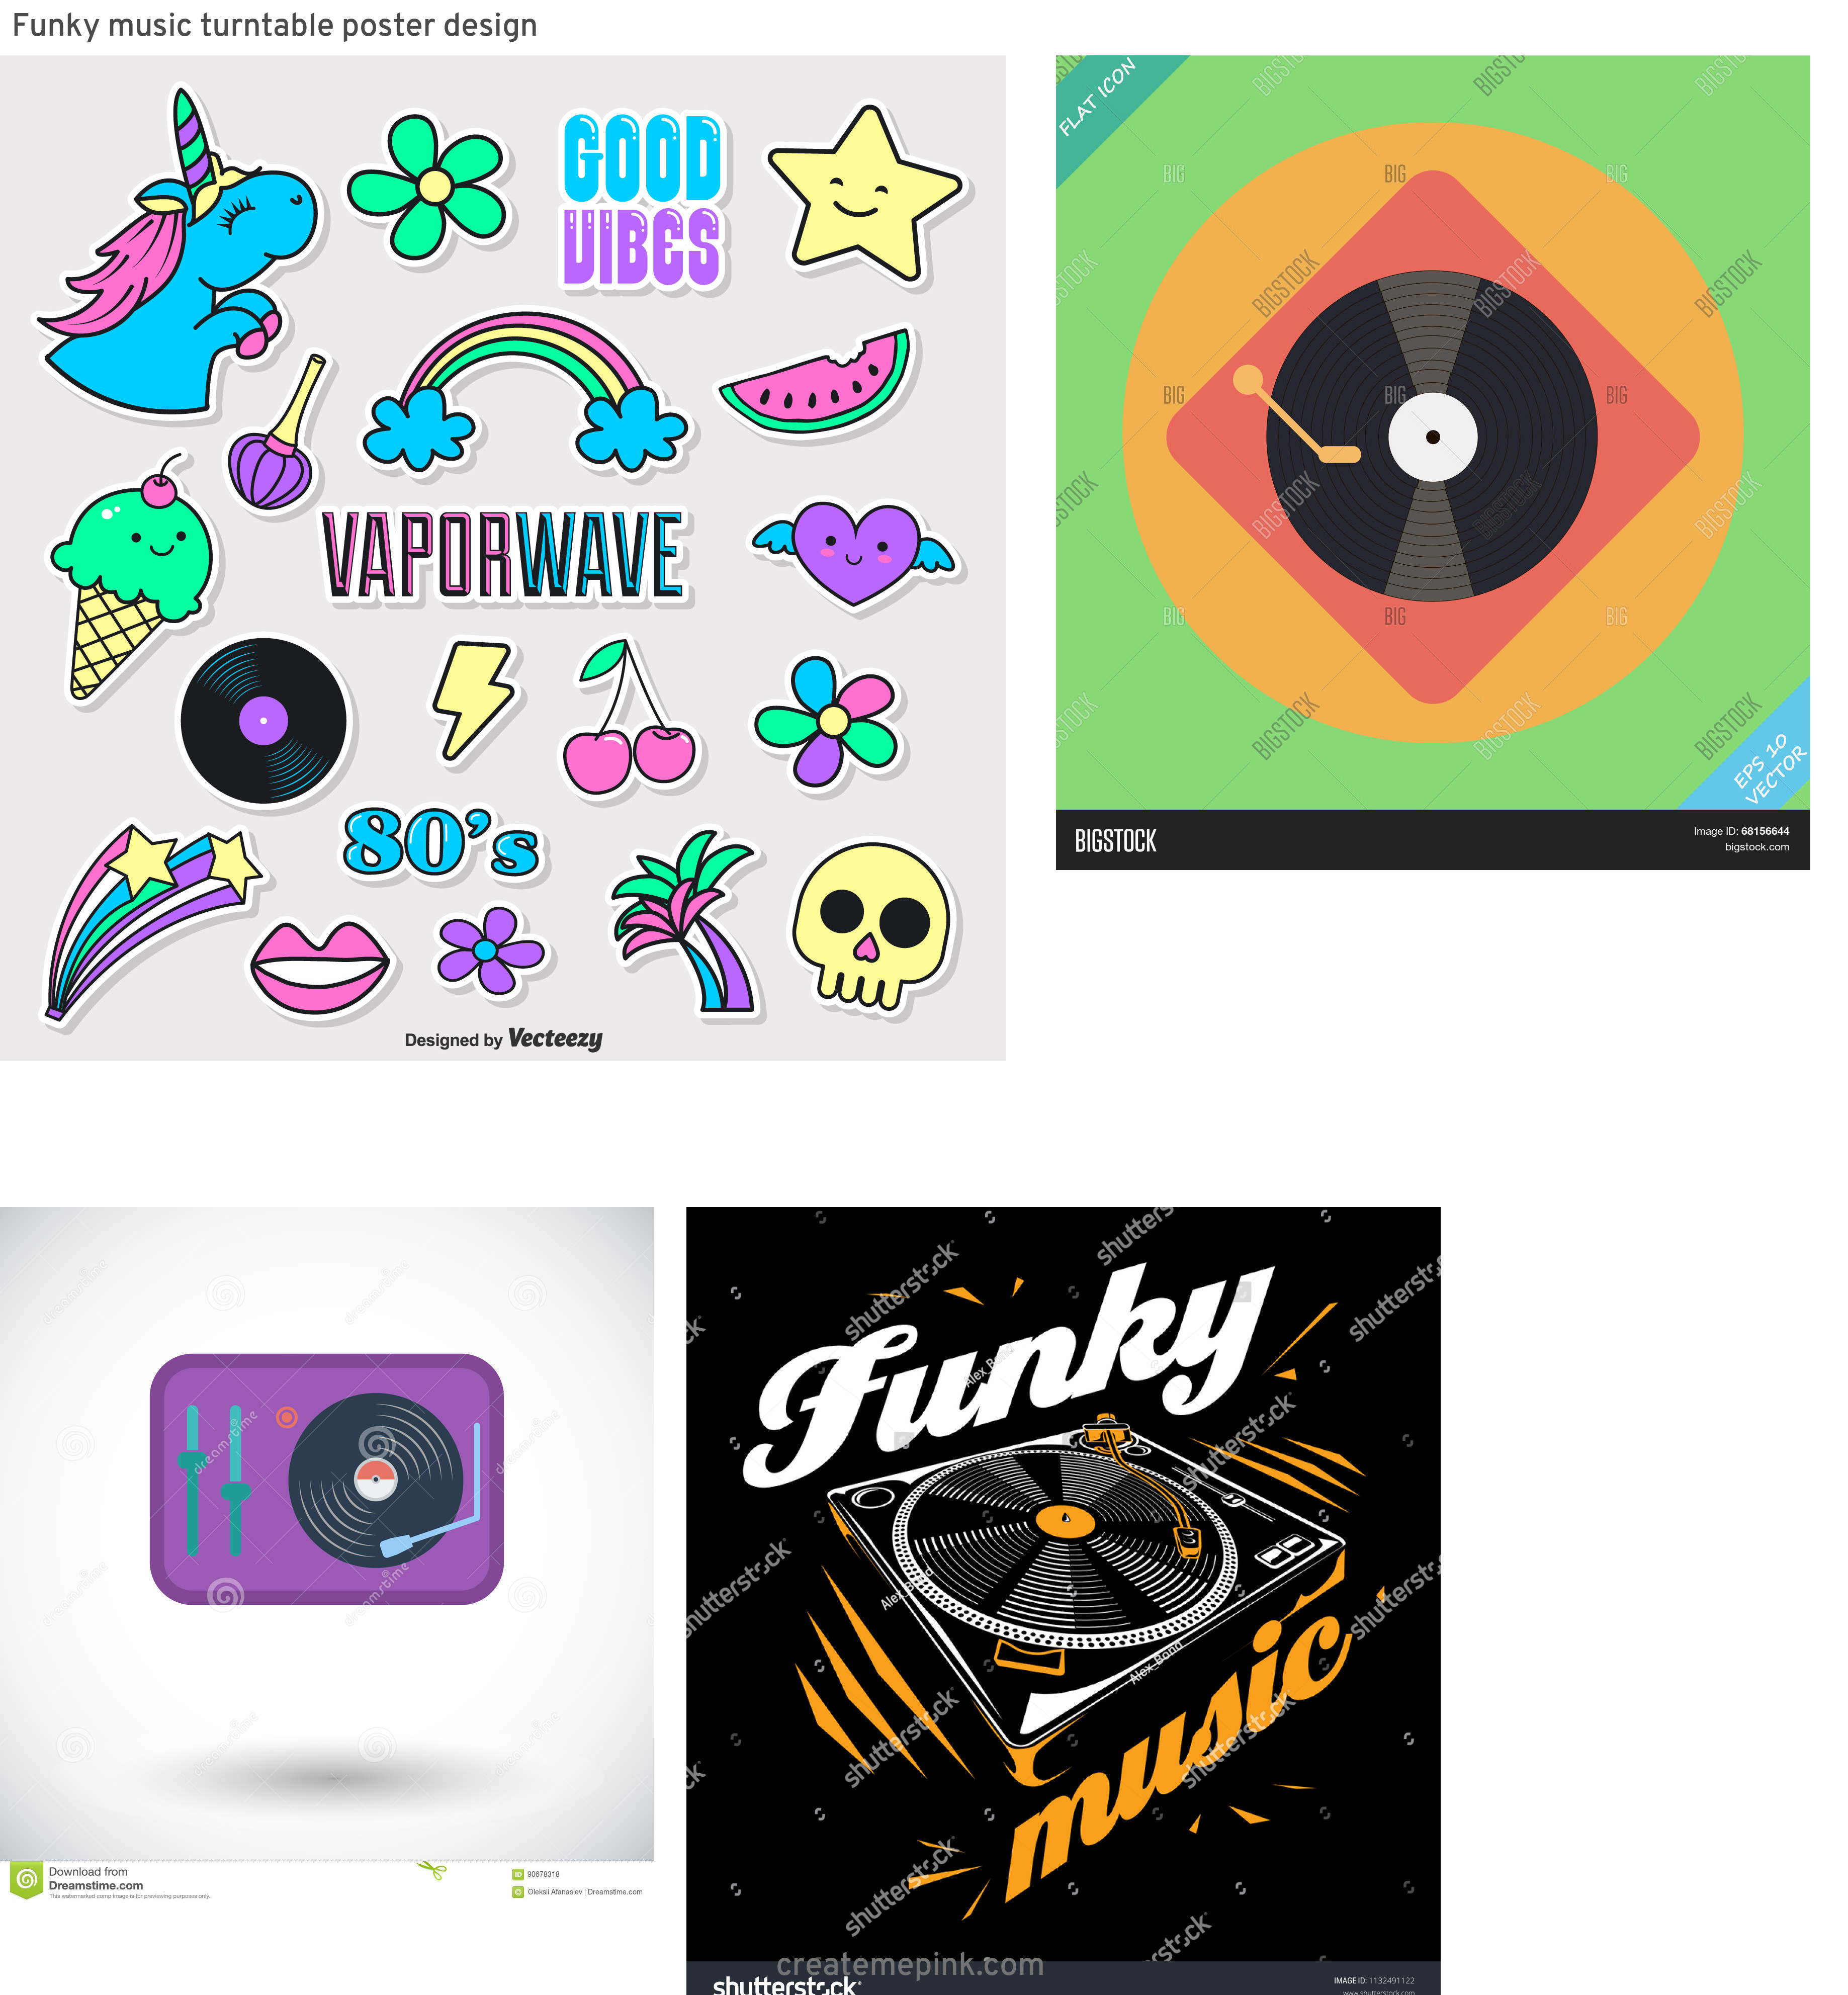 Funk Vector Turntables: Funky Music Turntable Poster Design